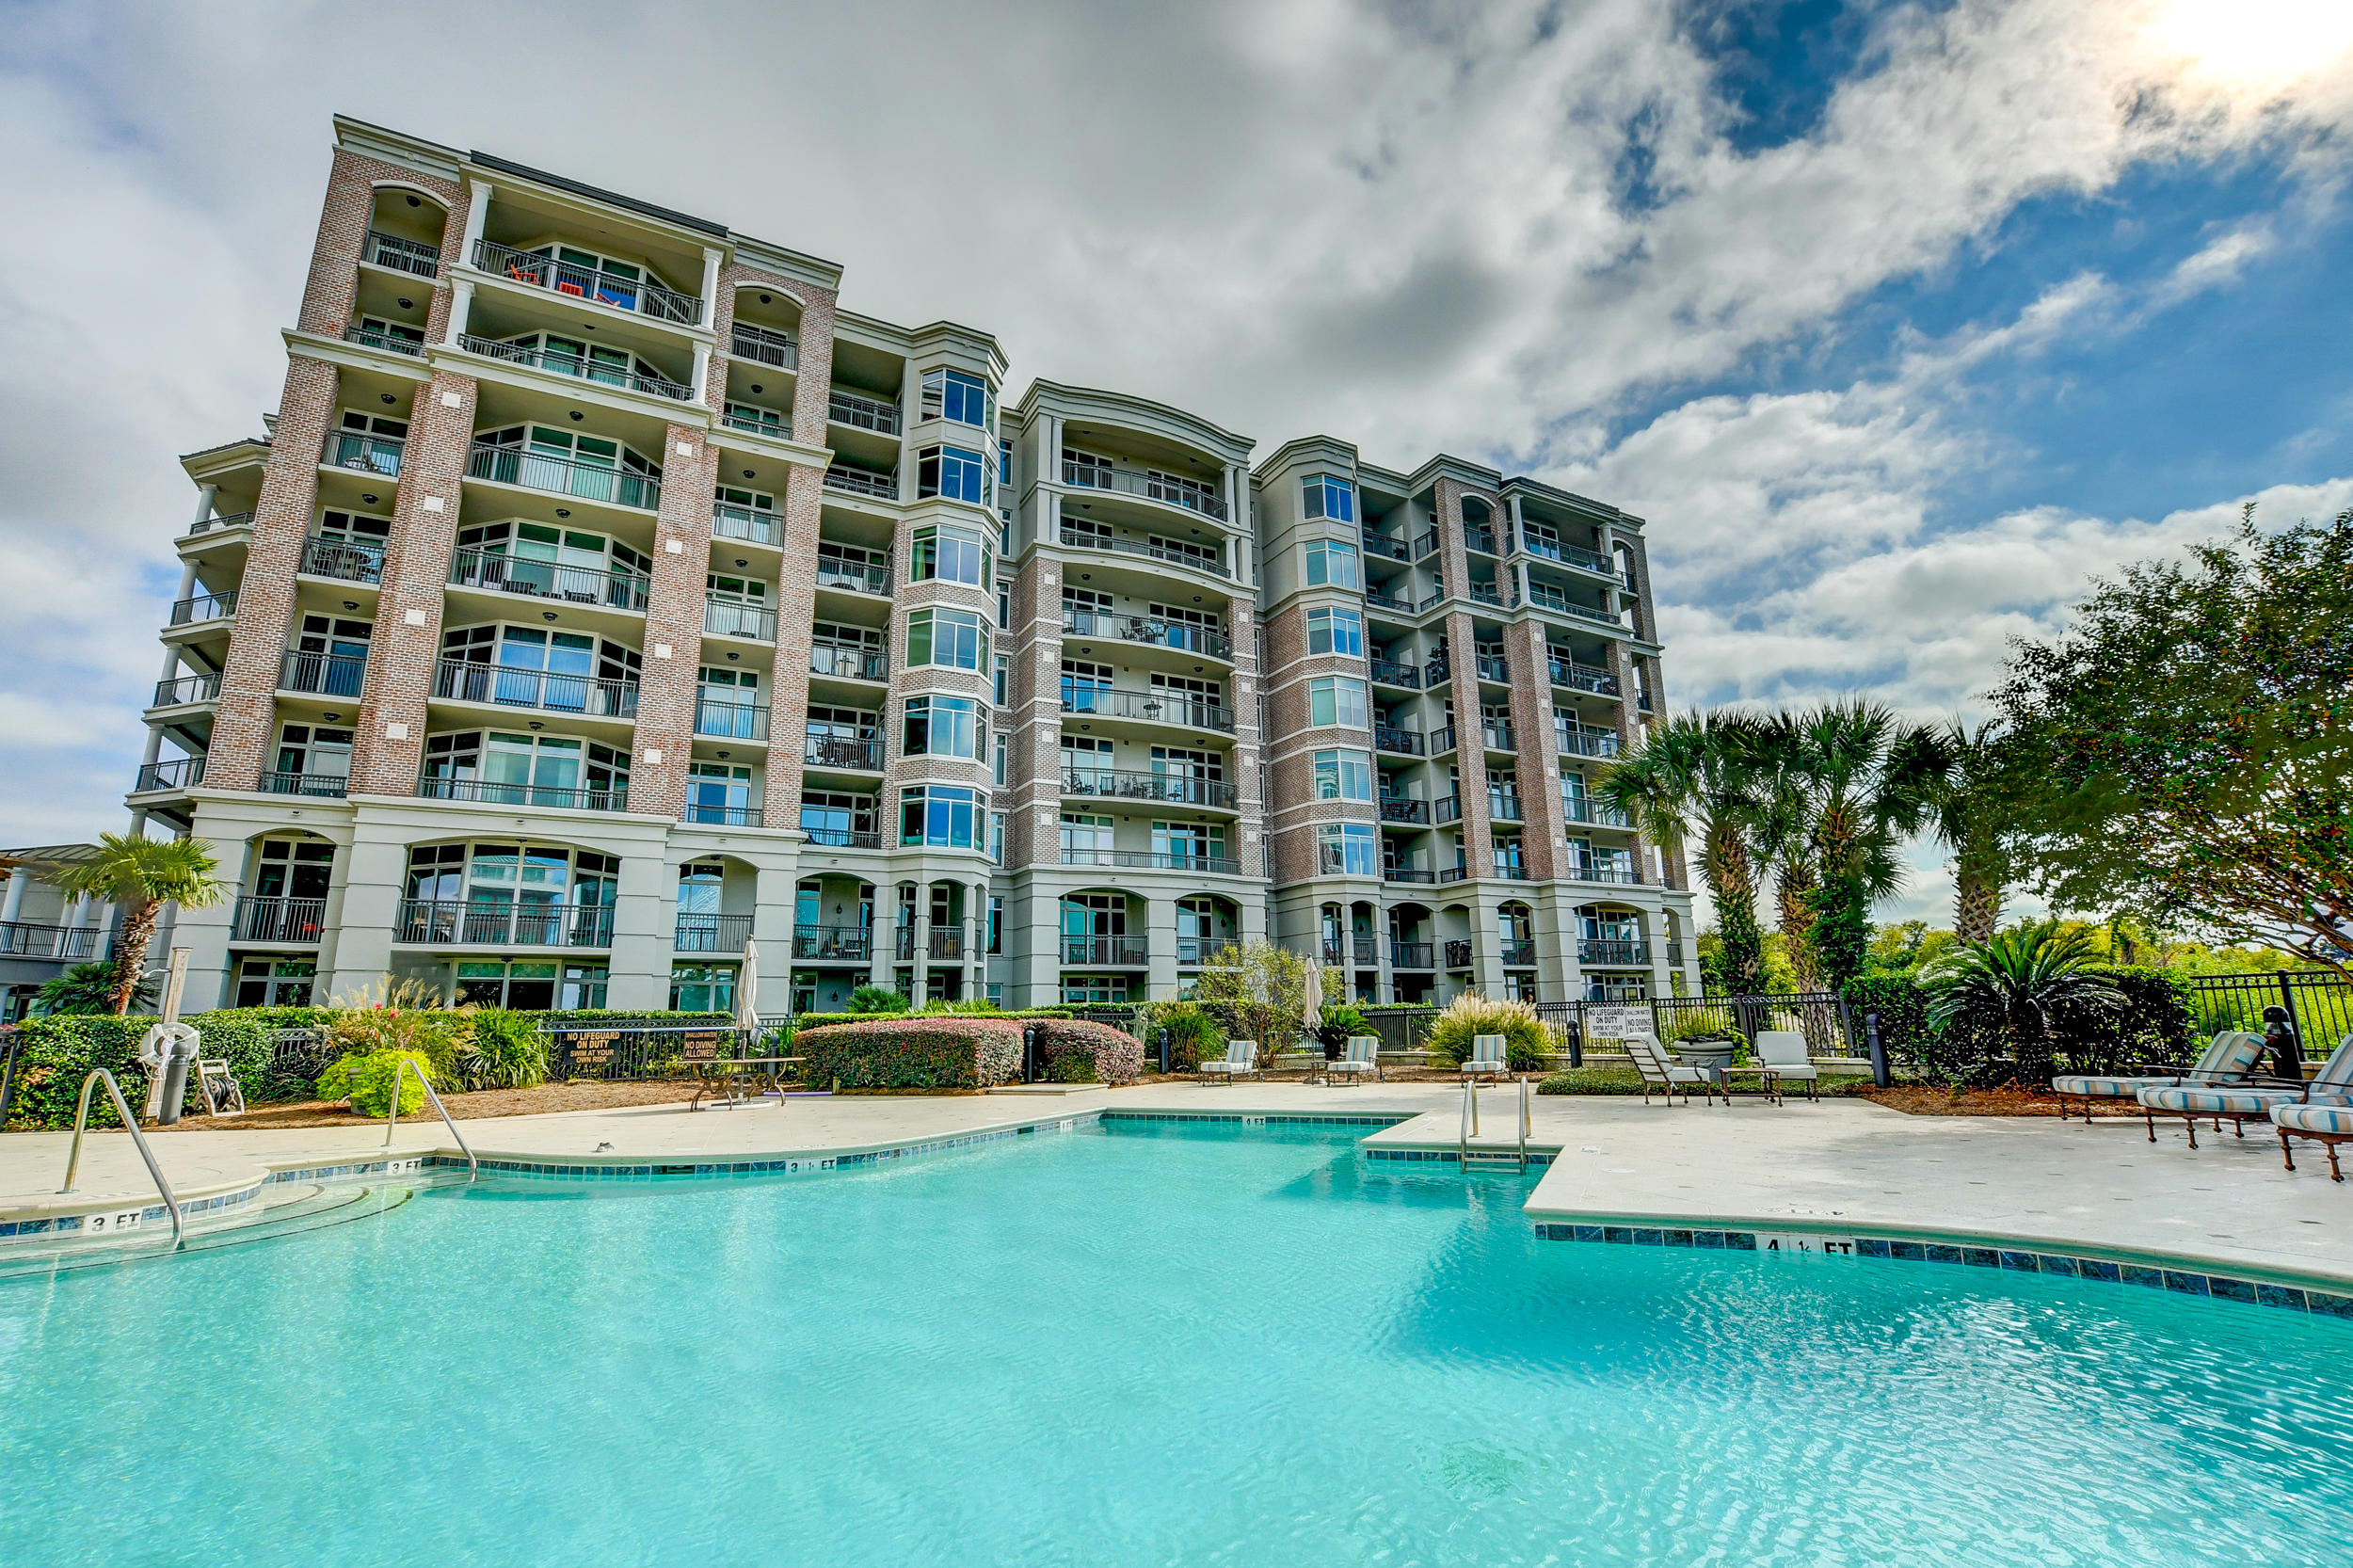 Renaissance On Chas Harbor Homes For Sale - 224 Plaza, Mount Pleasant, SC - 0